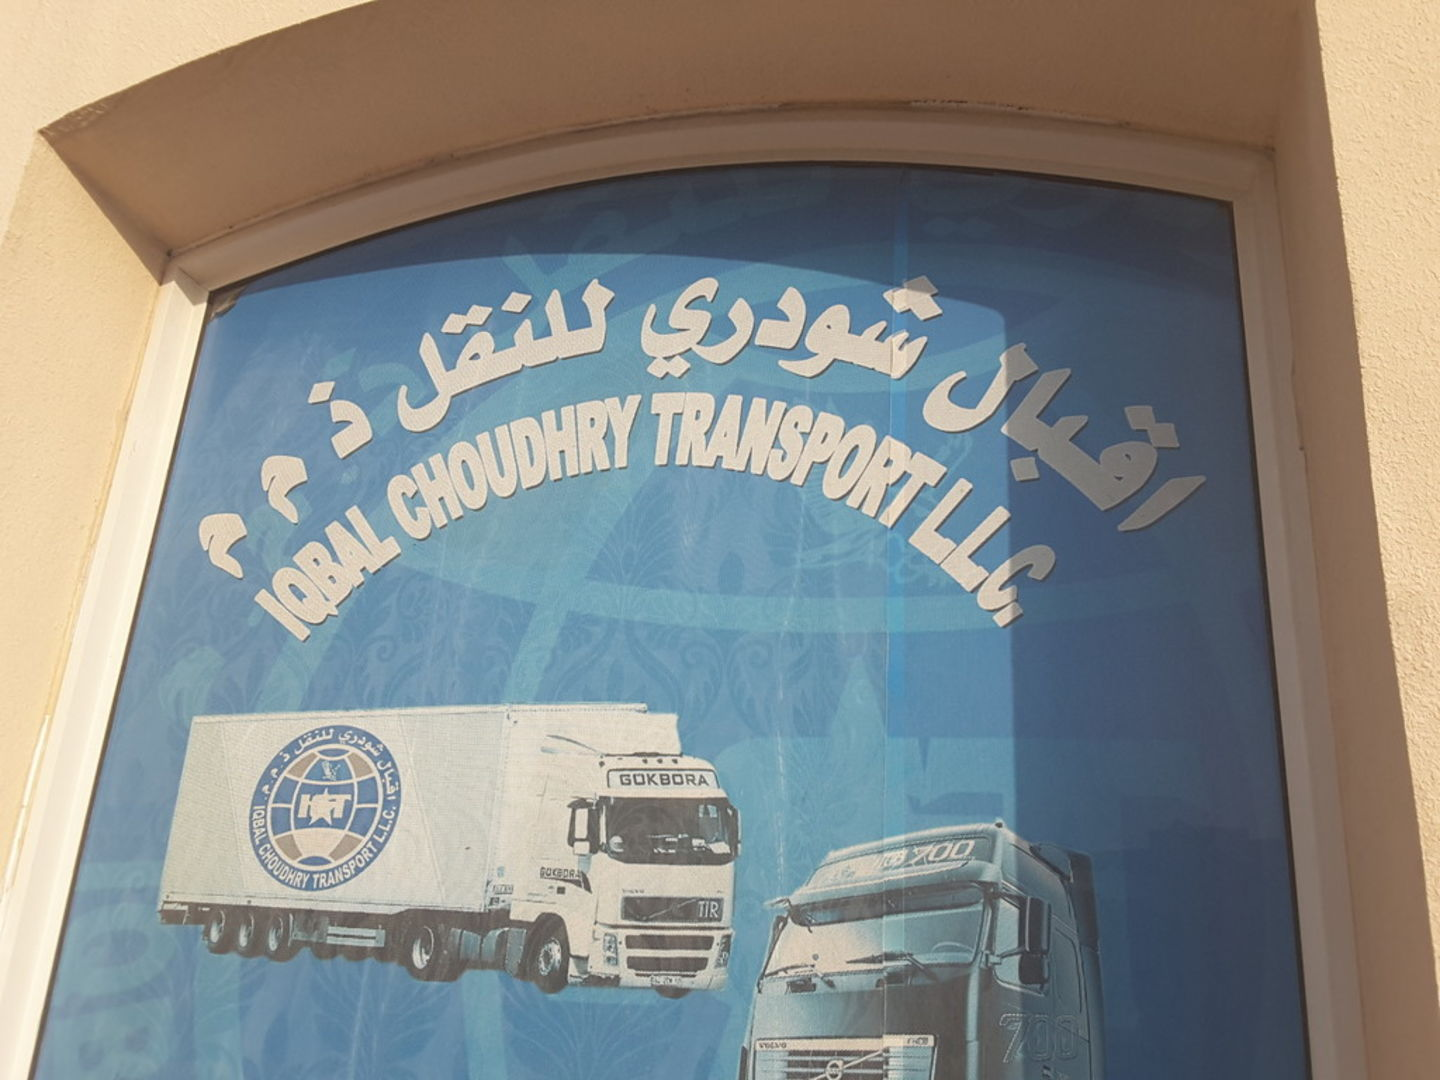 HiDubai-business-iqbal-choudhry-transport-by-heavy-trucks-transport-vehicle-services-heavy-vehicles-rentals-international-city-warsan-1-dubai-2